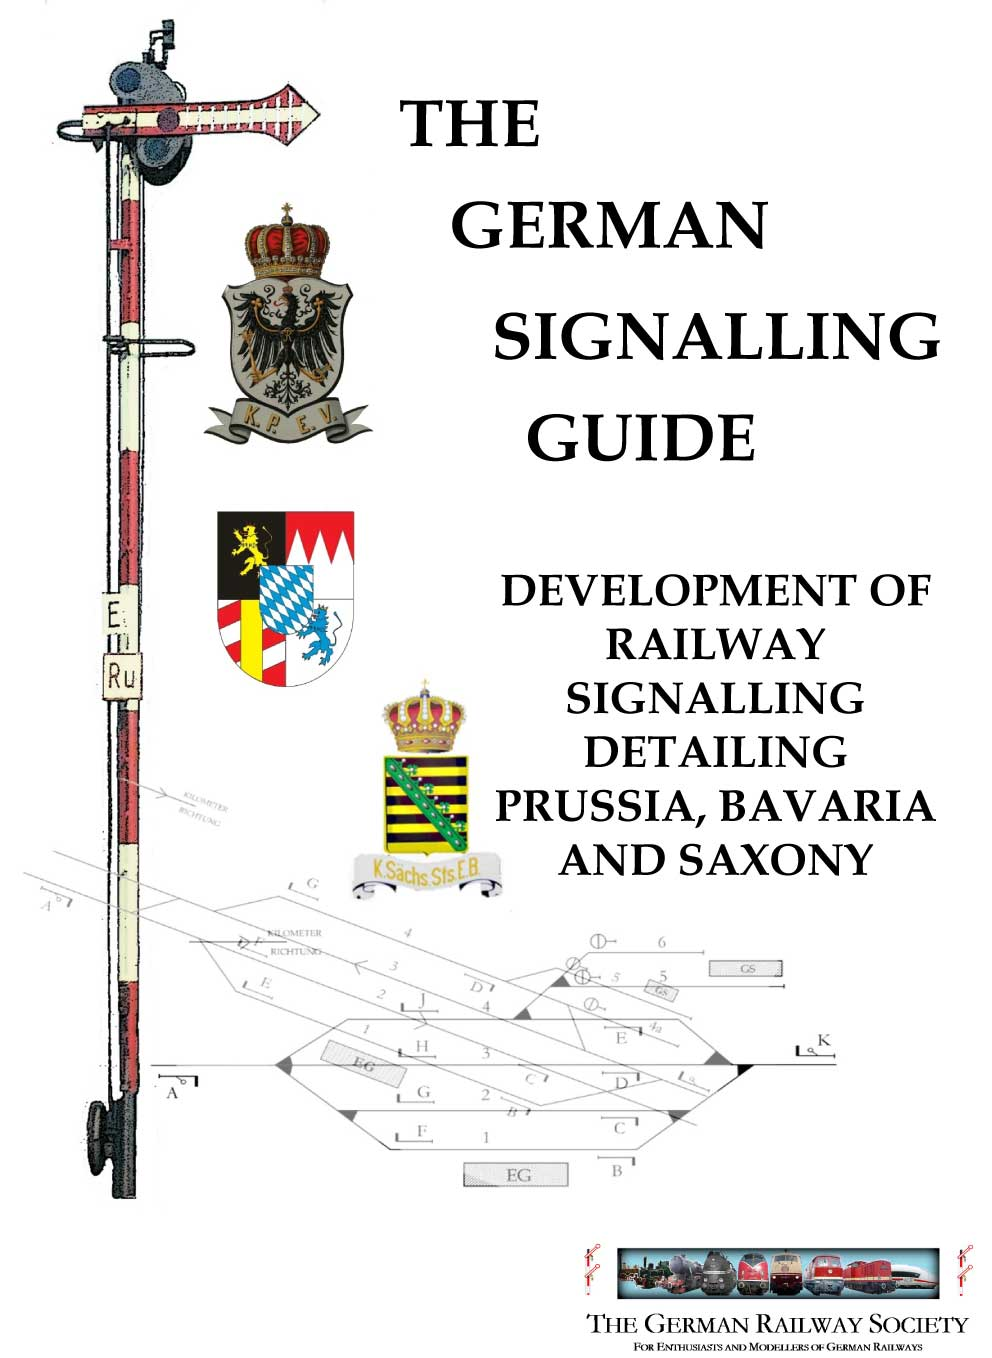 Cover image: The development of German railway signalling detailing Prussia, Bavaria and Saxony